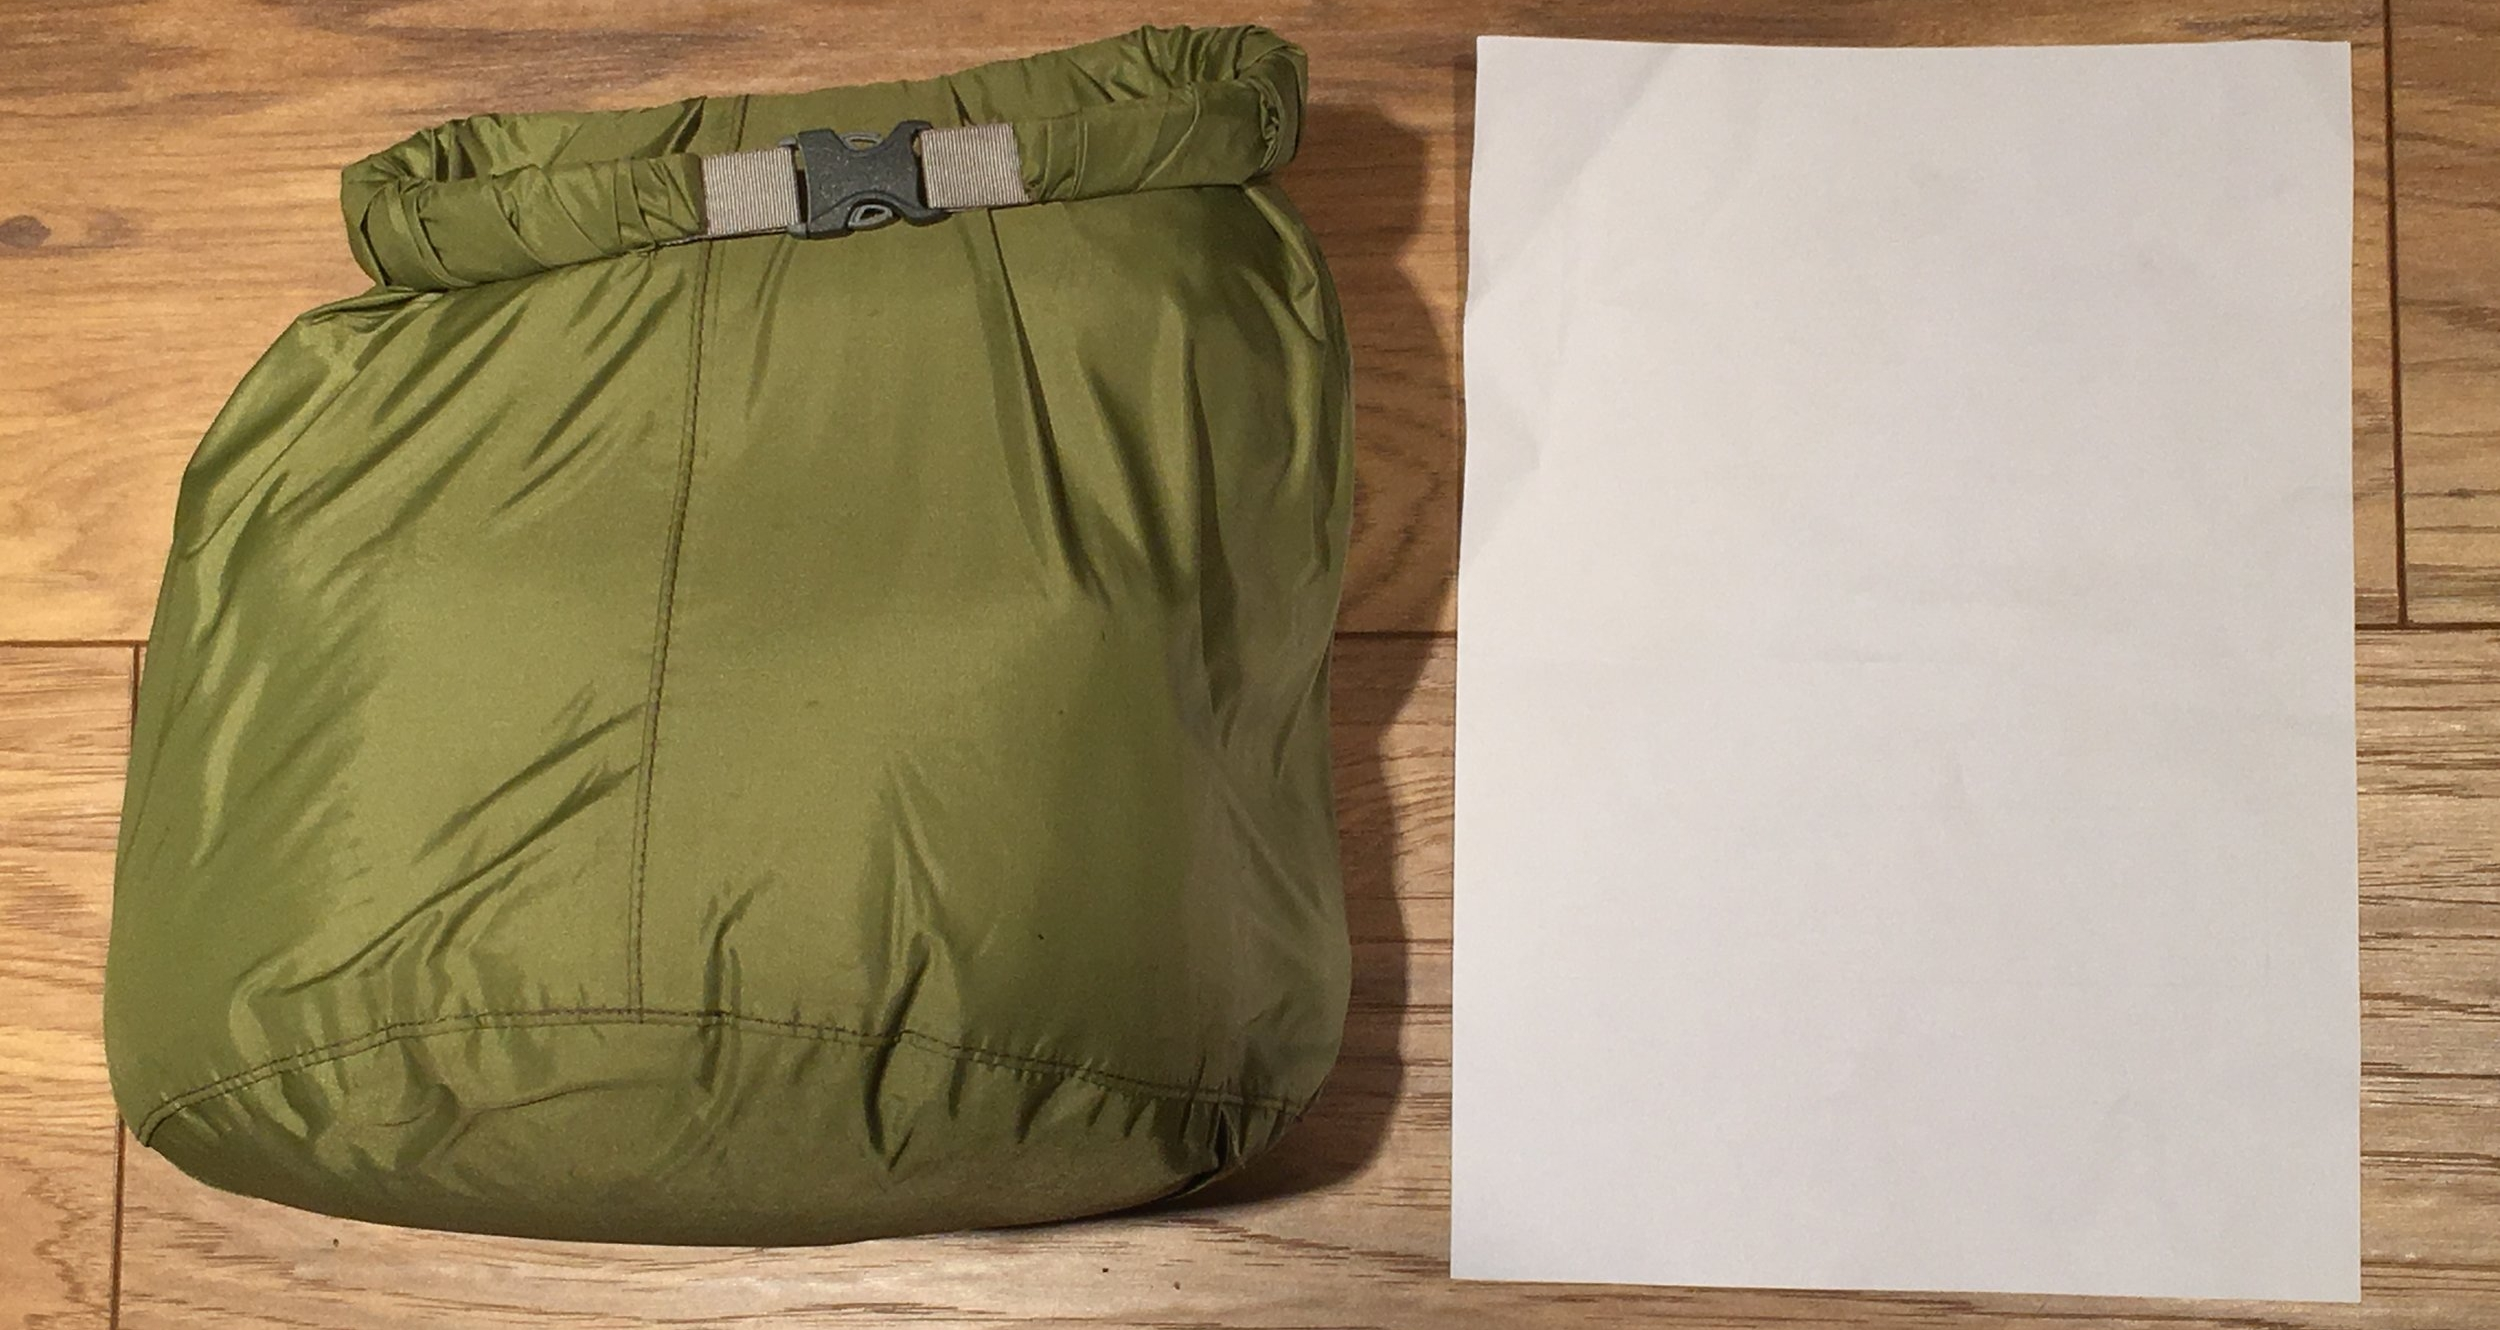 The Ditch Kit - All packed up (A4 page for scale). This lives in my day pack whilst canoeing, with my spare clothes in the larger portage pack. That way should I capsize and only be able to recover one of my packs, I'll be still be able to change into a dry set of clothes.